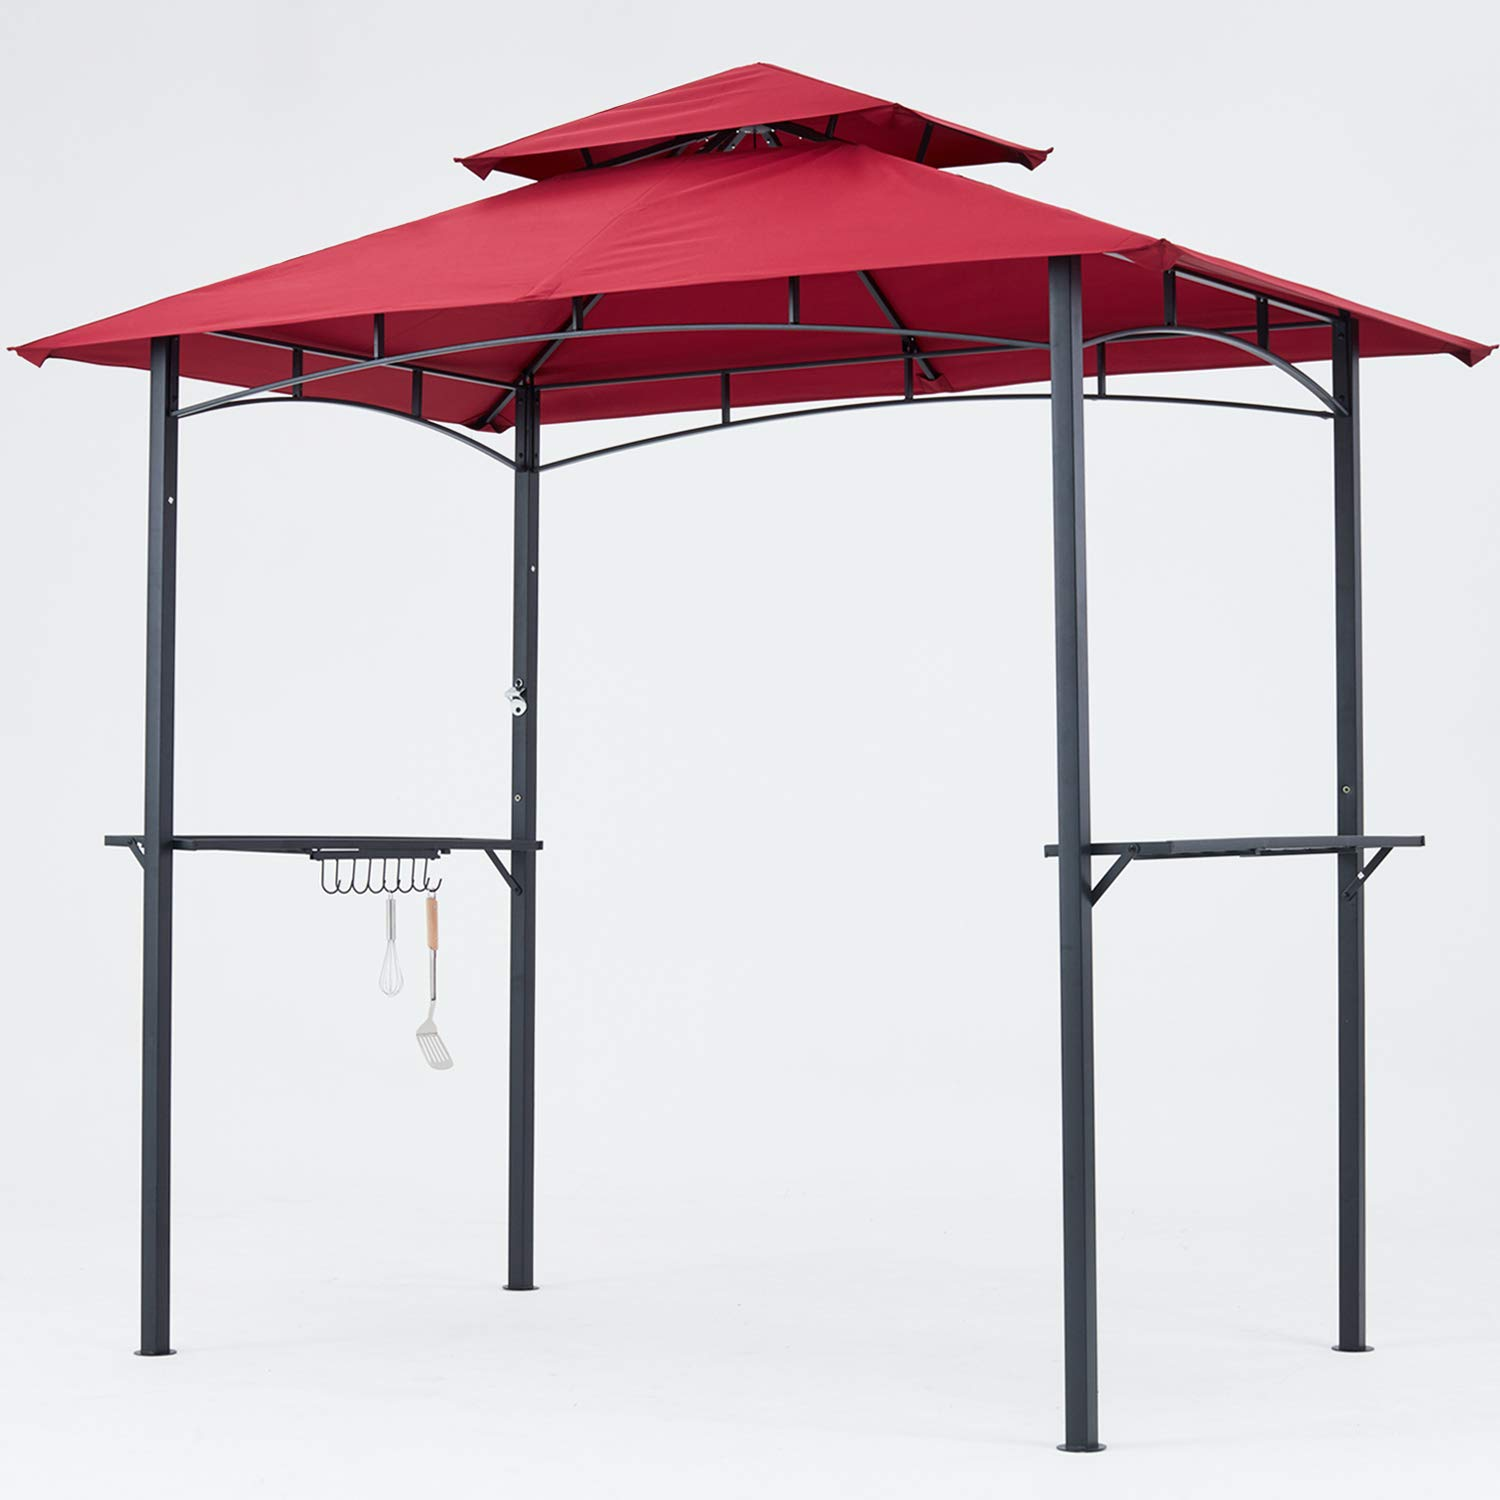 MASTERCANOPY Grill Gazebo 8 x 5 Double Tiered Outdoor BBQ Gazebo Canopy (Burgundy) by MasterCanopy